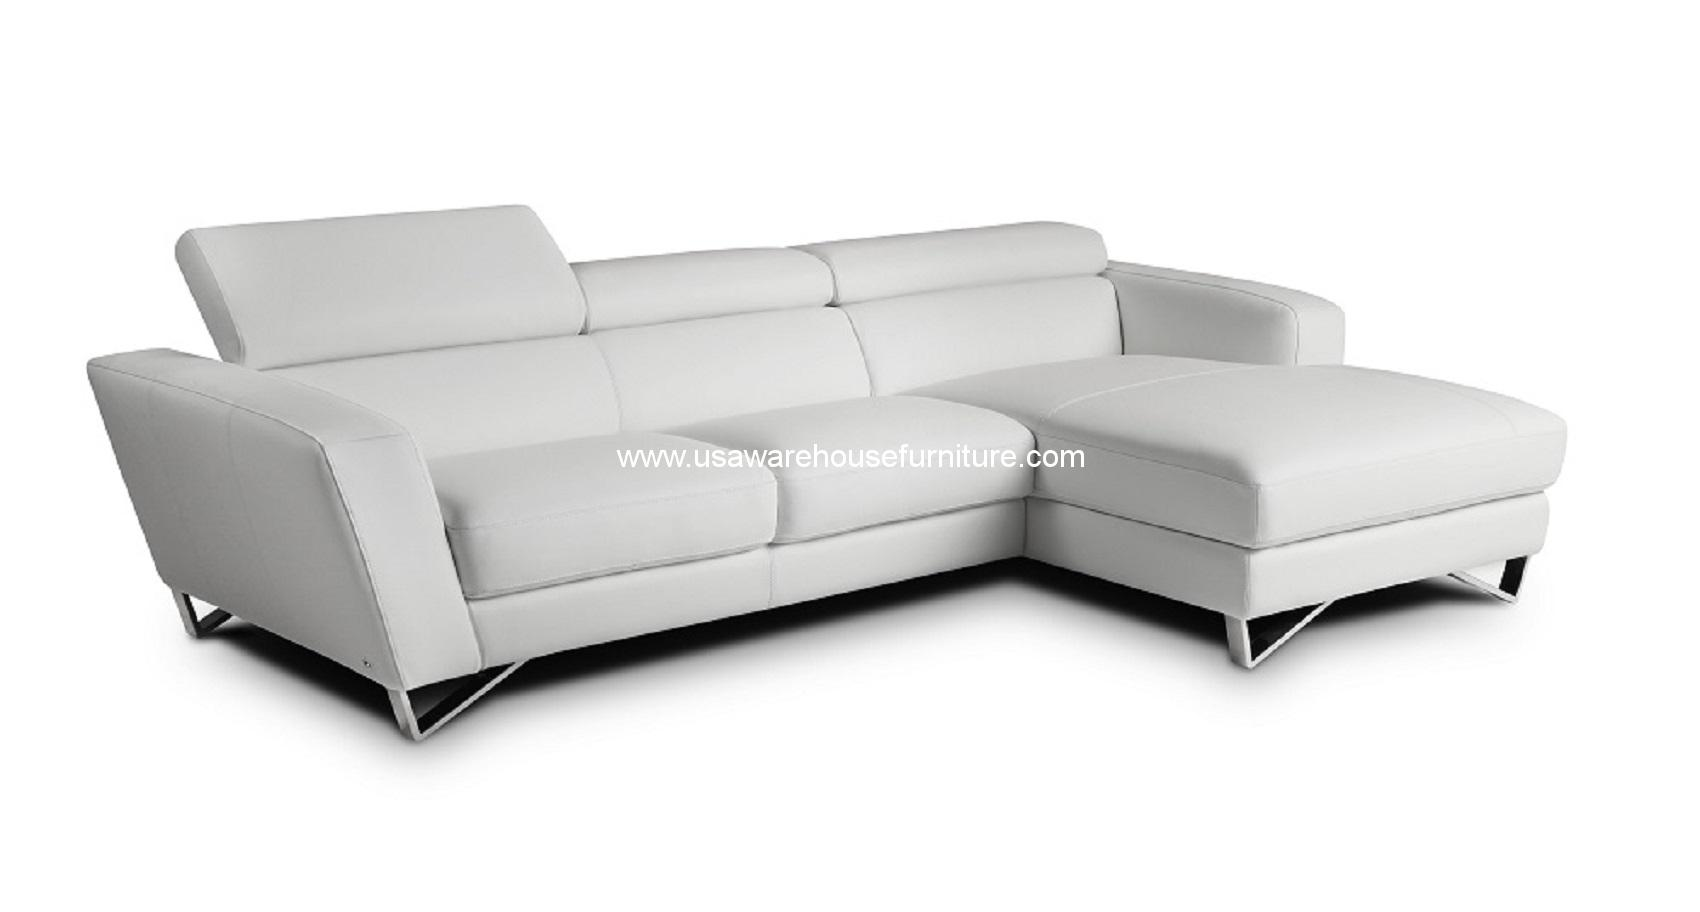 modern white italian leather sectional sofa alyssa home reversible with ottoman and chaise 2 piece sparta